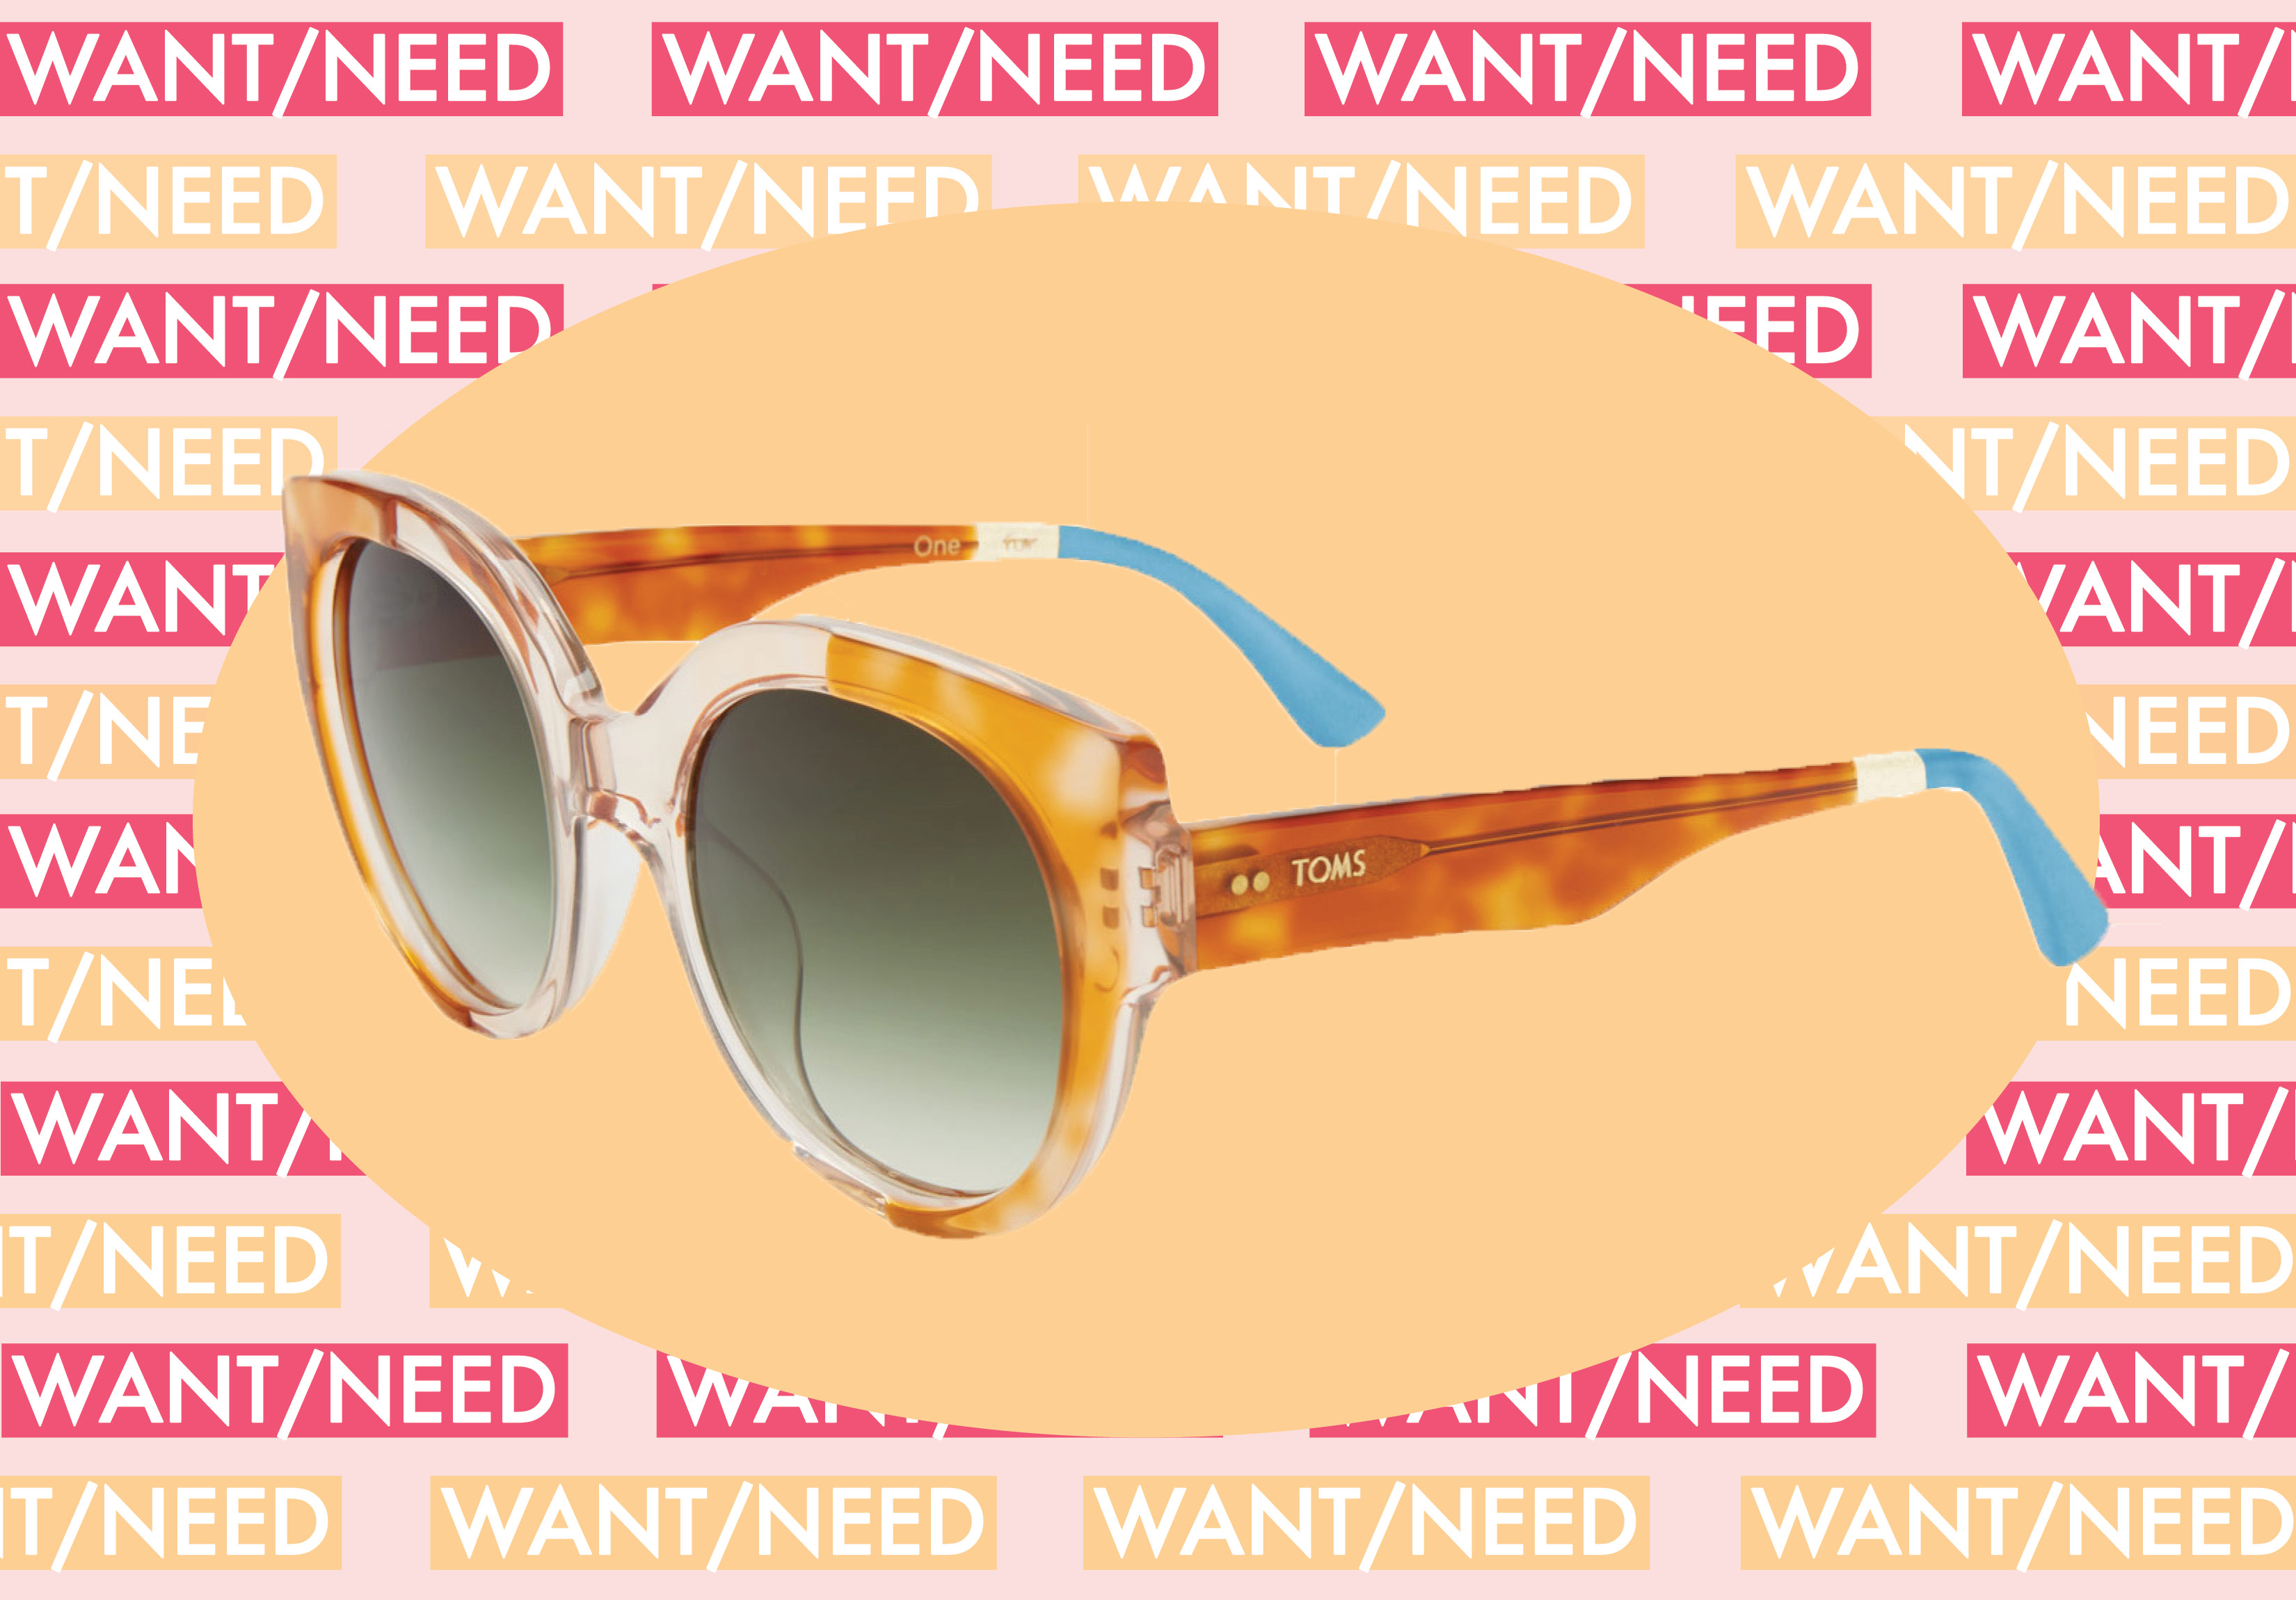 WANT/NEED: A pair of retro shades (because squinting in the sun isn't cute), and more stuff you want to buy